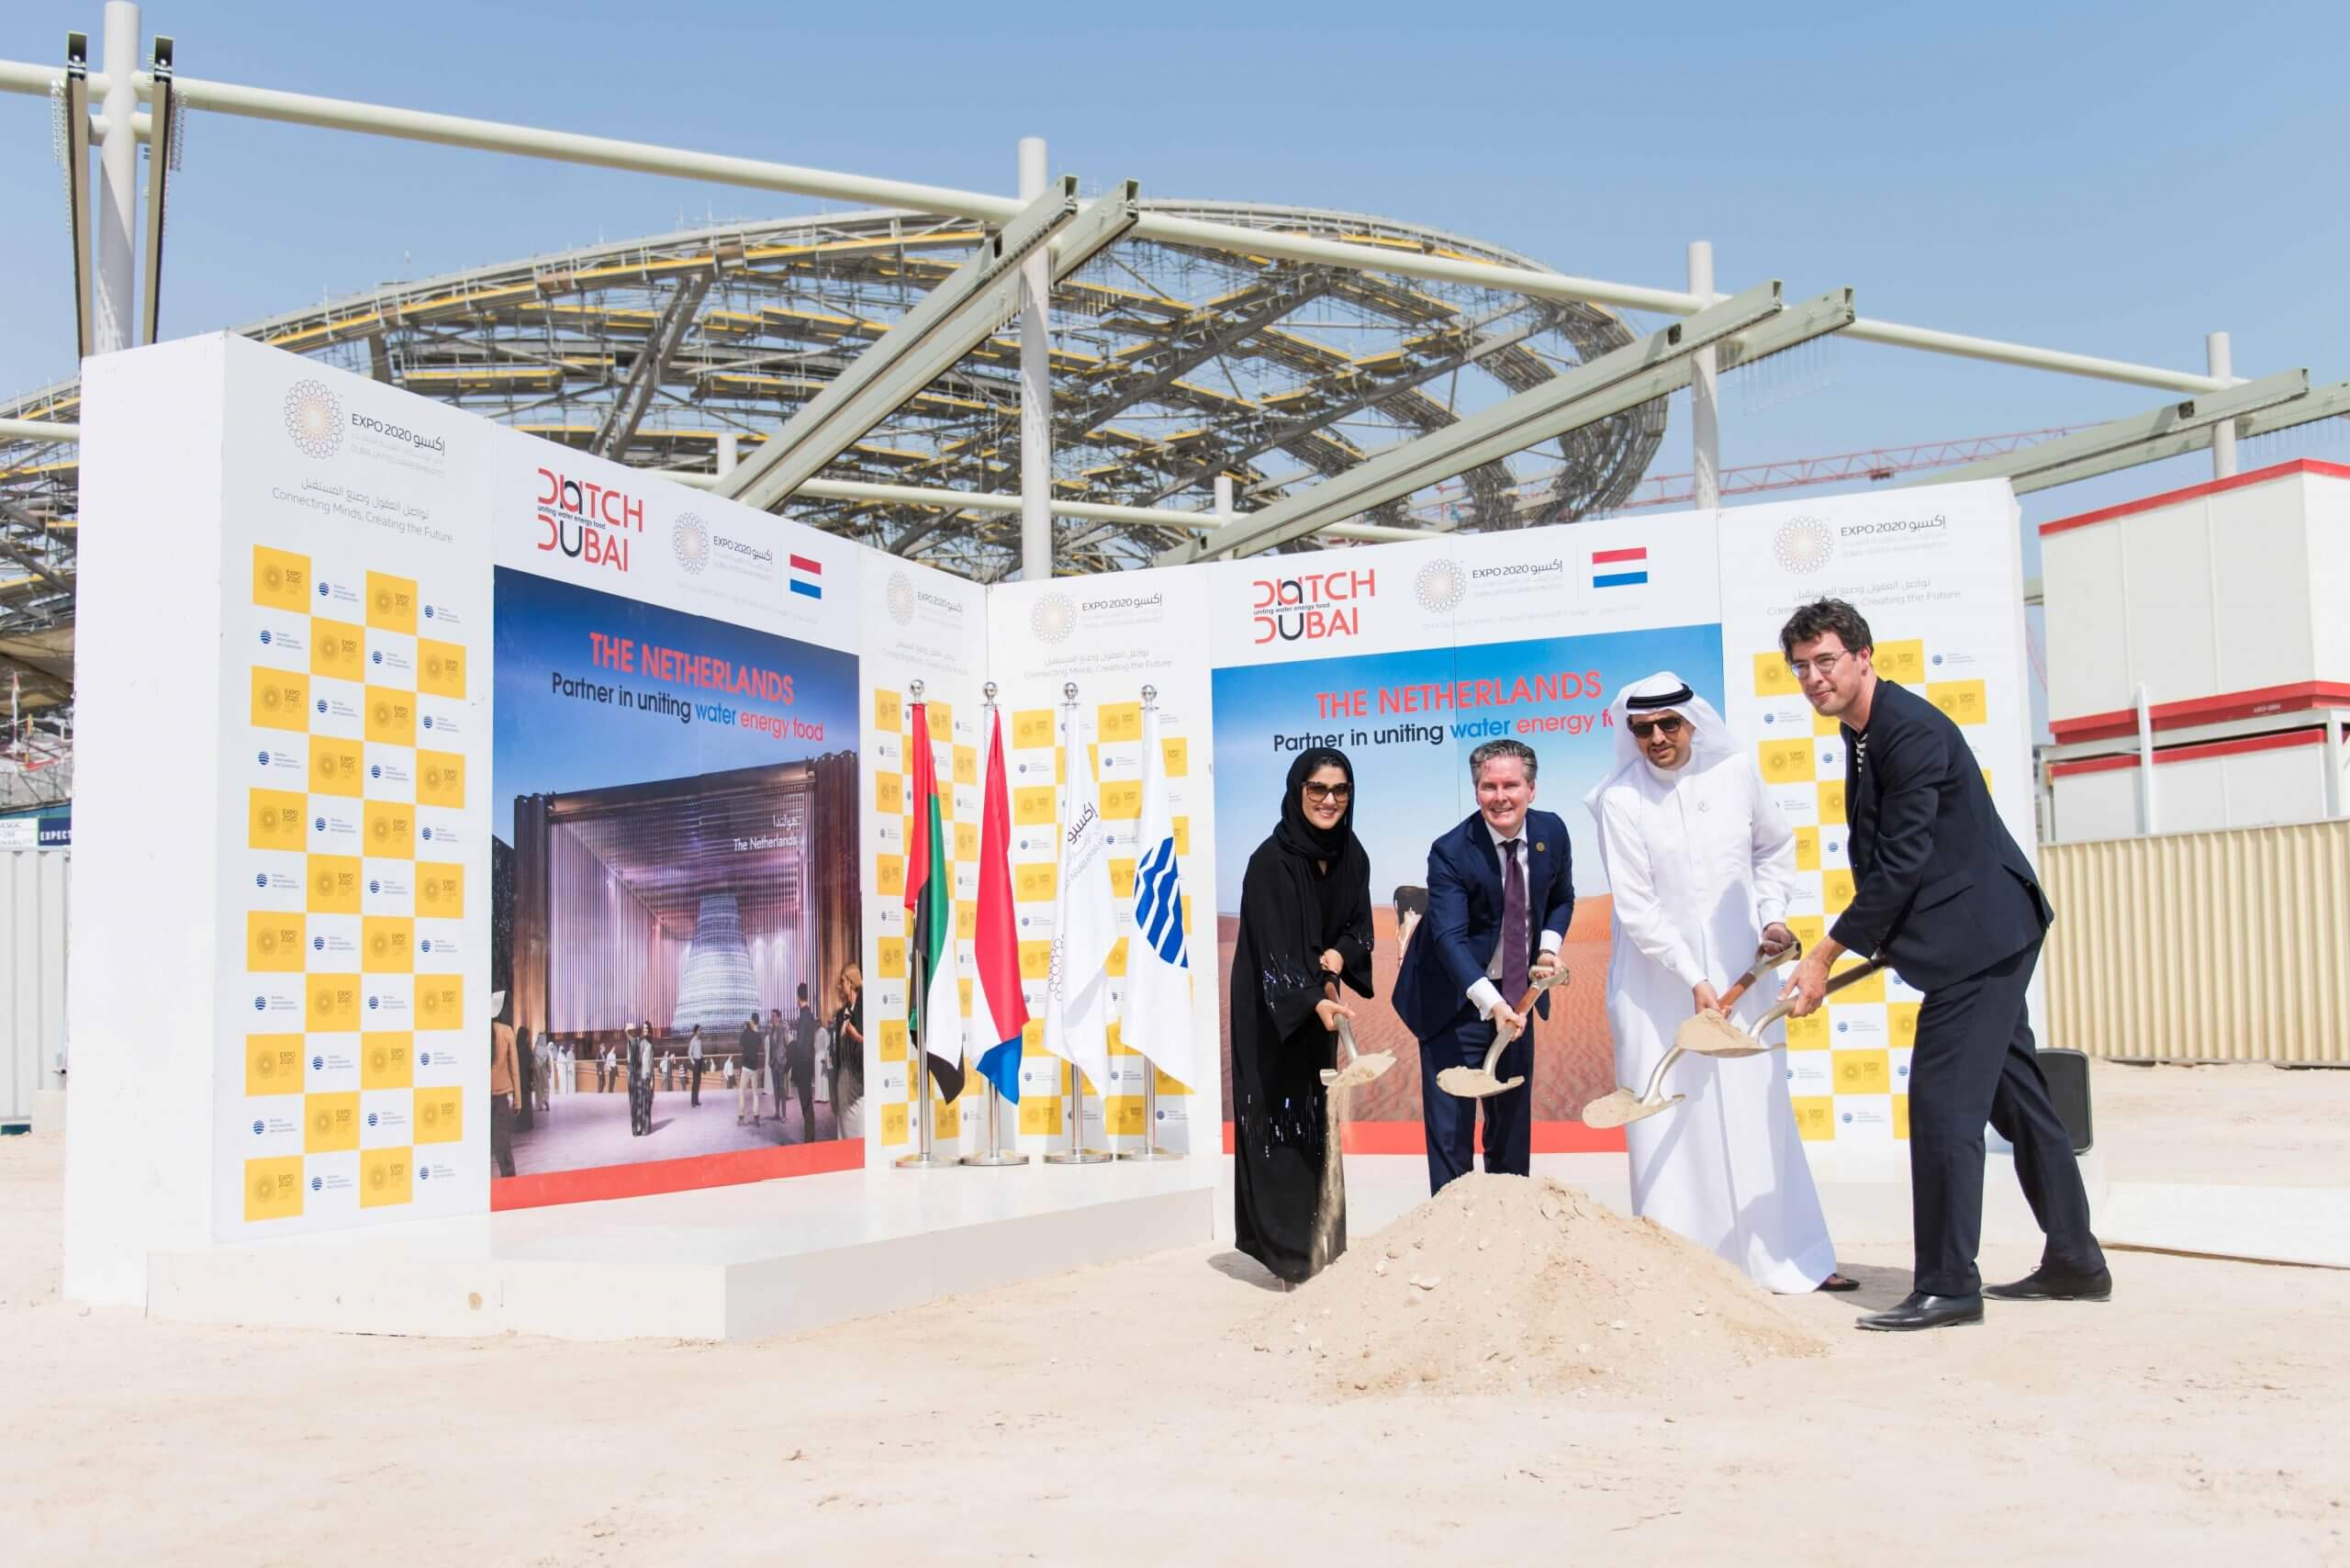 Groundbreaking pavilion, Expo 2020